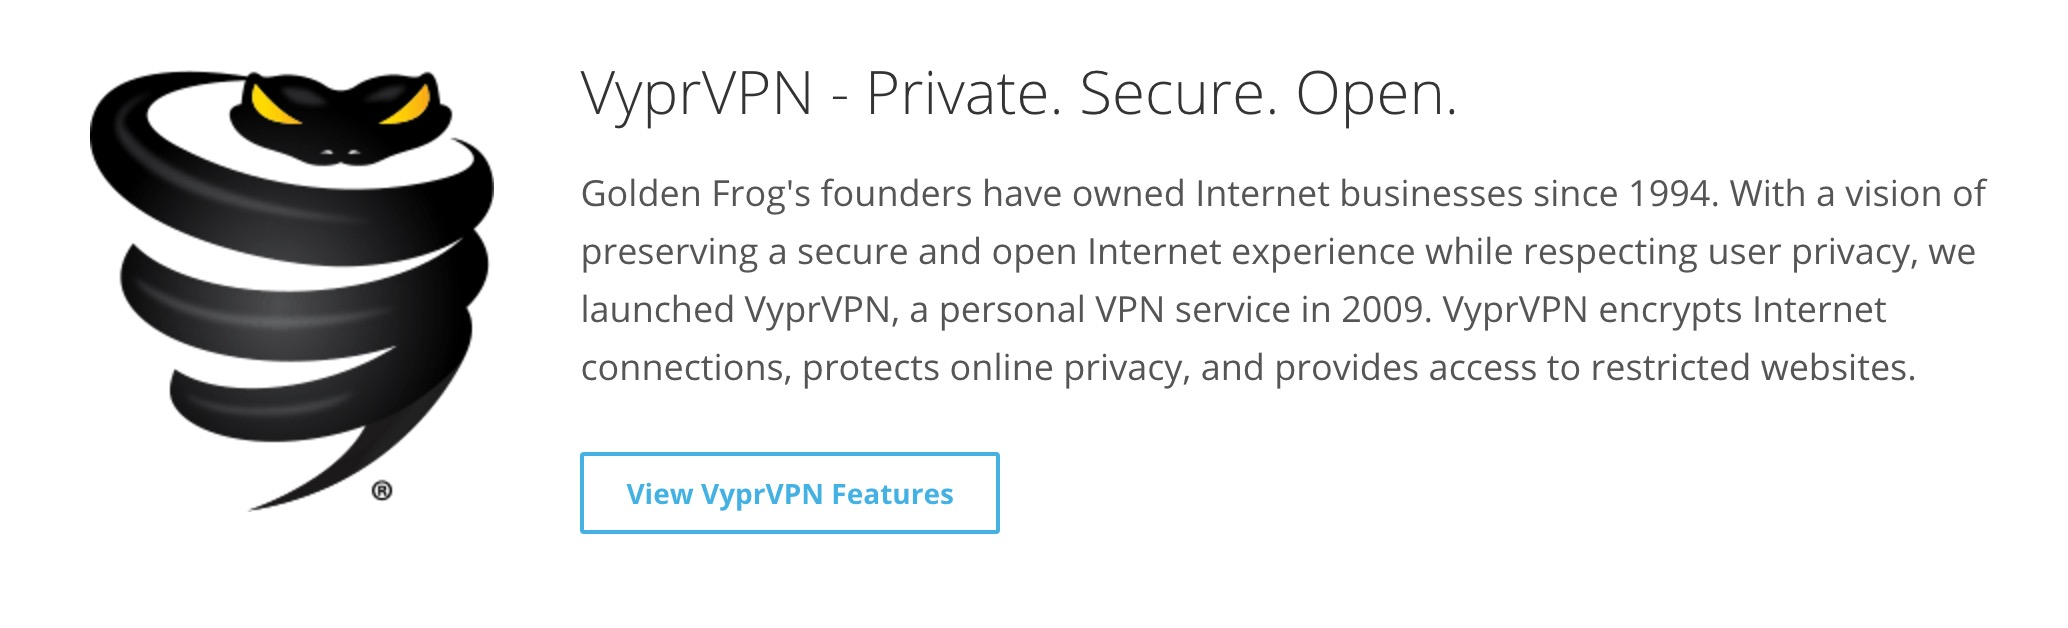 Speed and performance vyprvpn